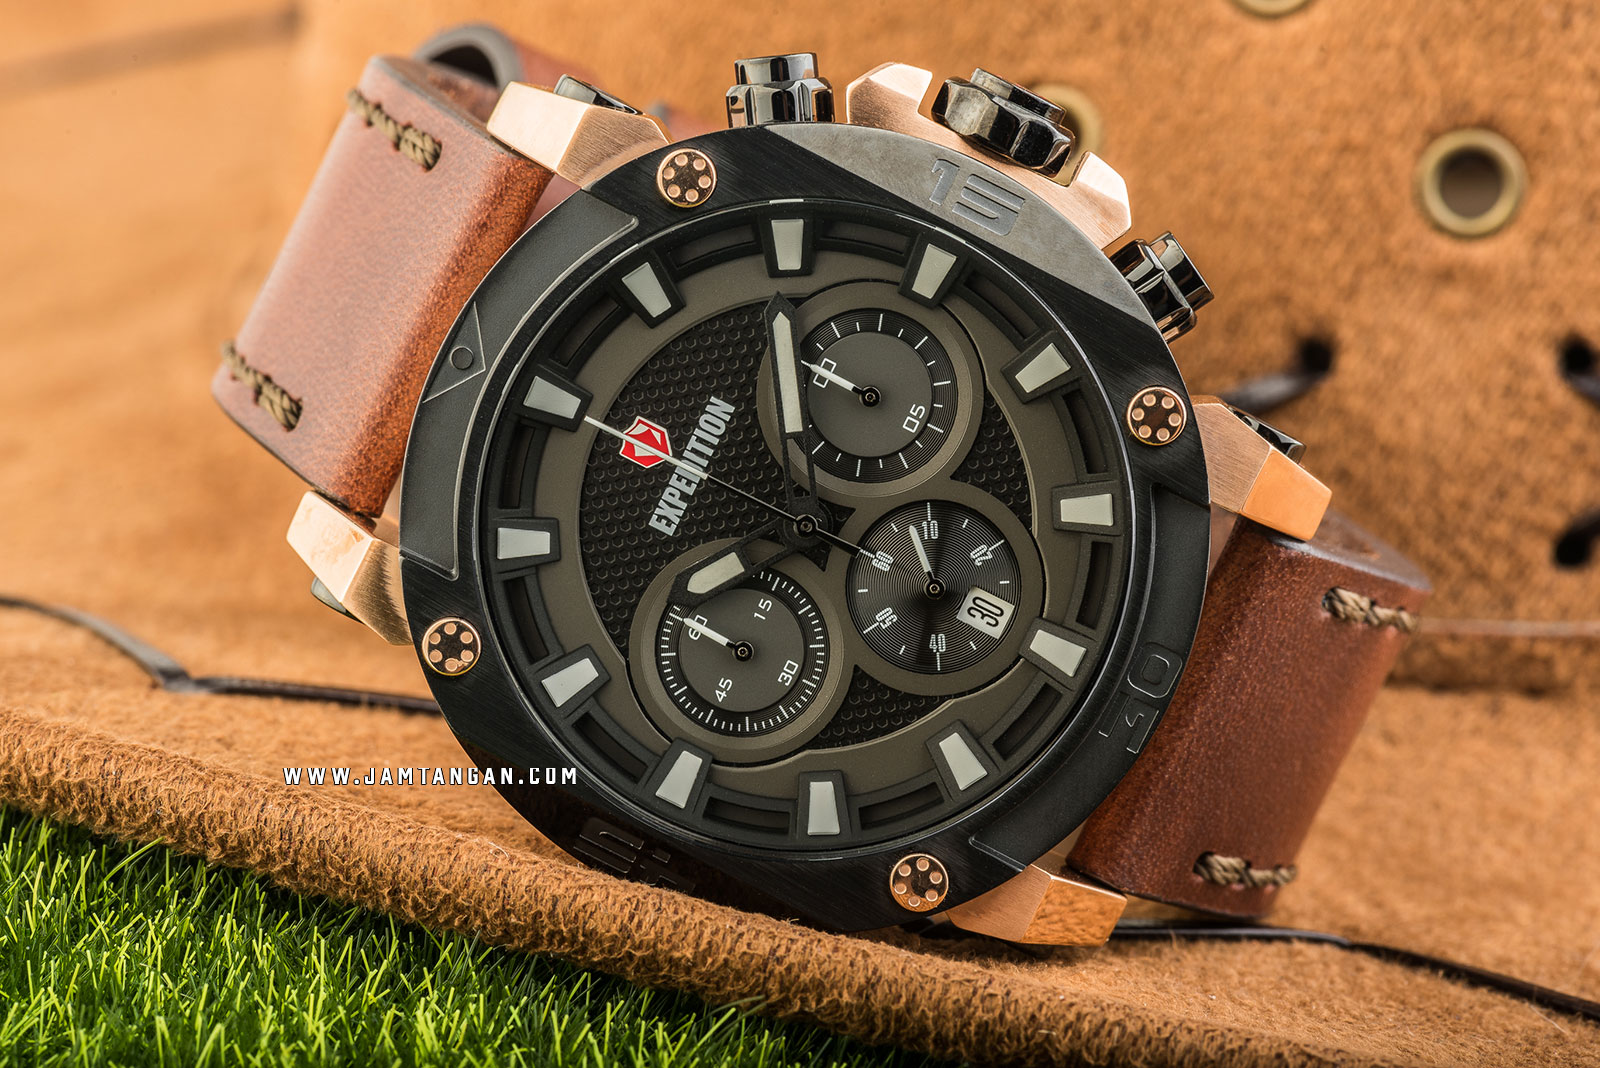 Expedition E 6606 MC LBRBABO Chronograph Men Black Dial Brown Leather Strap Machtwatch